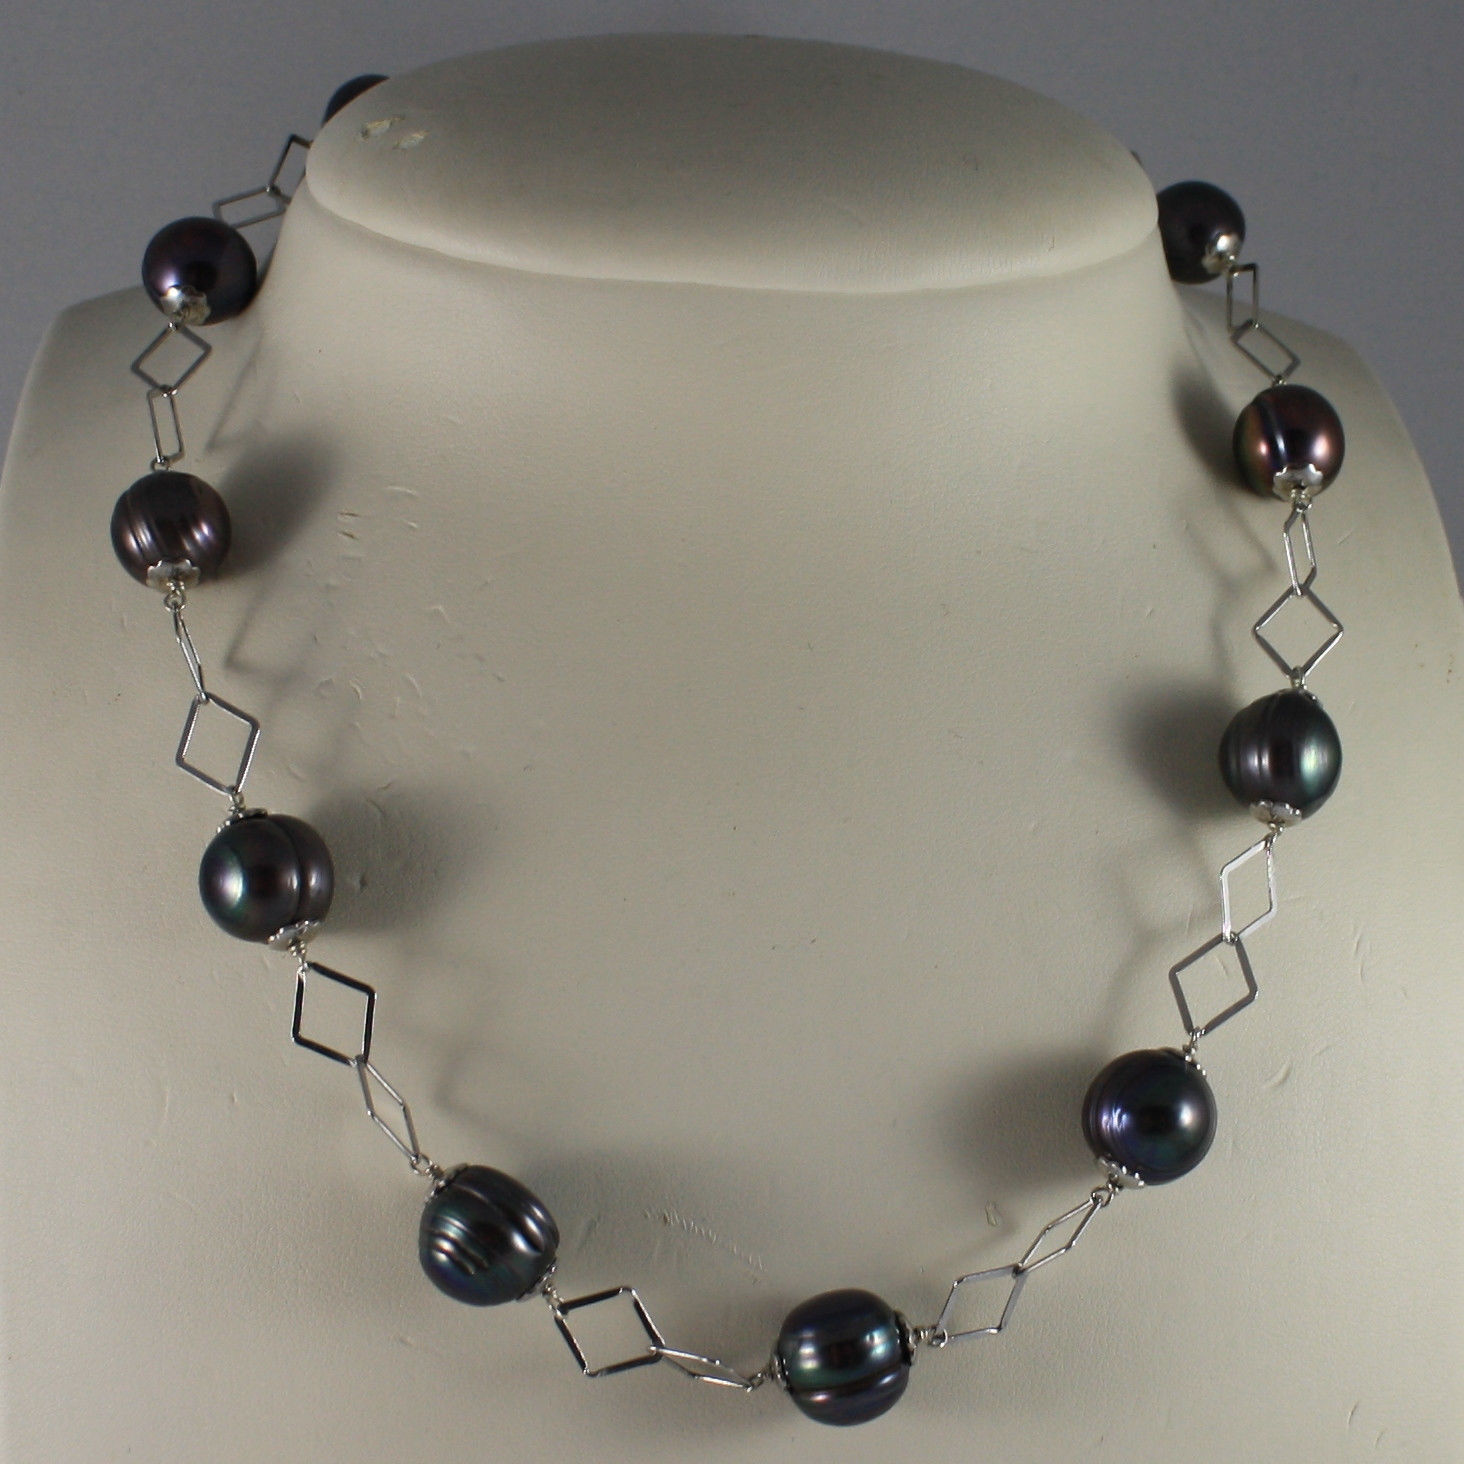 .925 SILVER RHODIUM NECKLACE WITH GRAY PEARLS AND RHOMBUS MESH